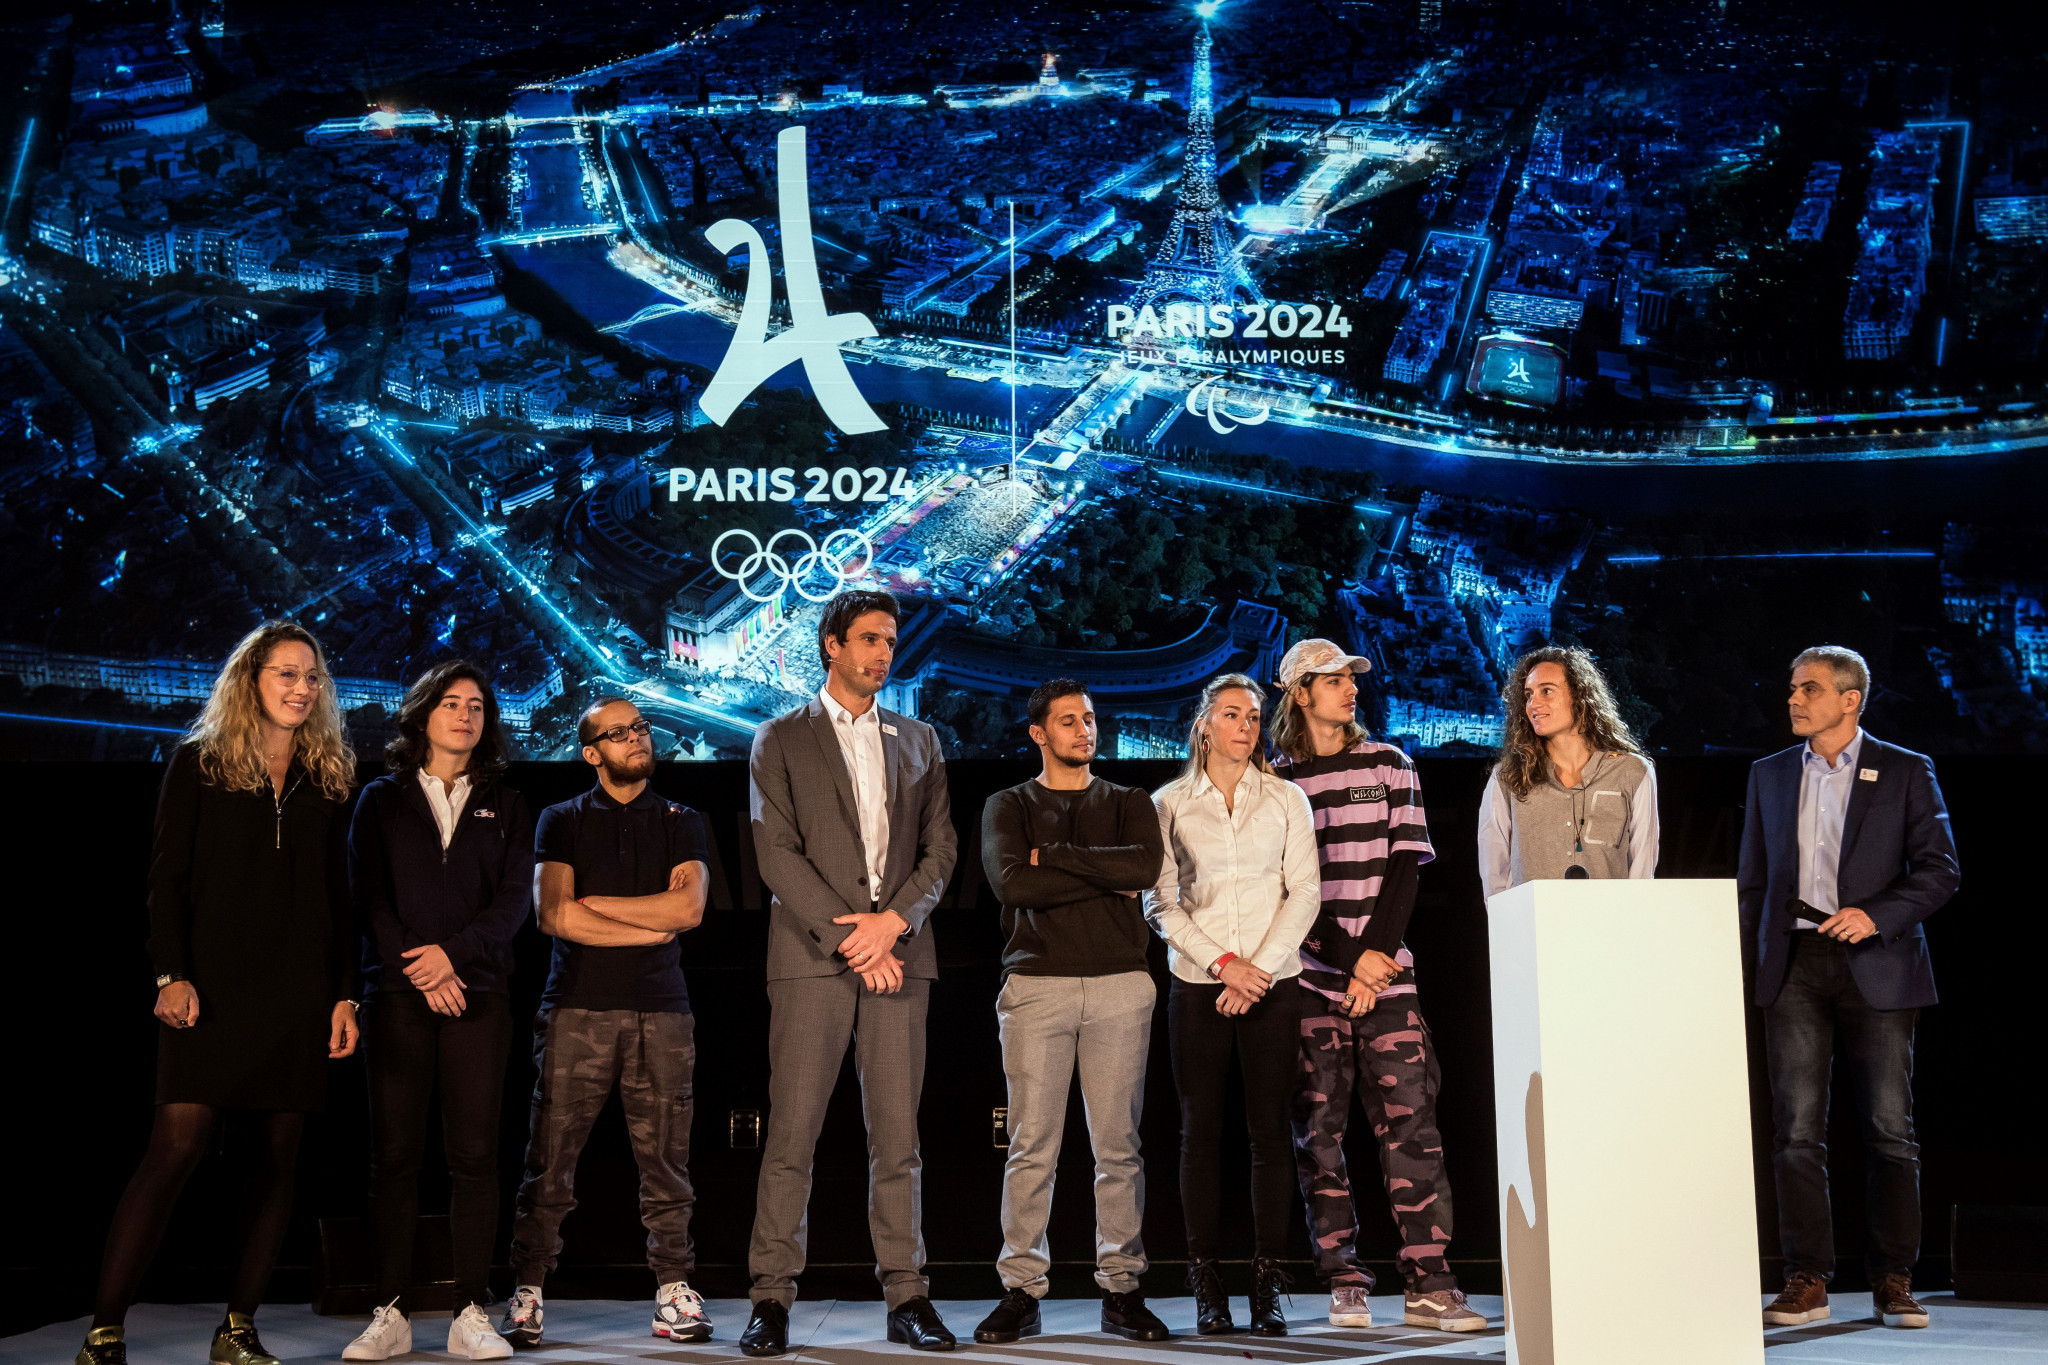 Paris 2024 President Tony Estanguet, fourth left, claimed organisers were hoping to increase engagement from fans with the Olympic Games to help make them more popular in the host city ©Getty Images